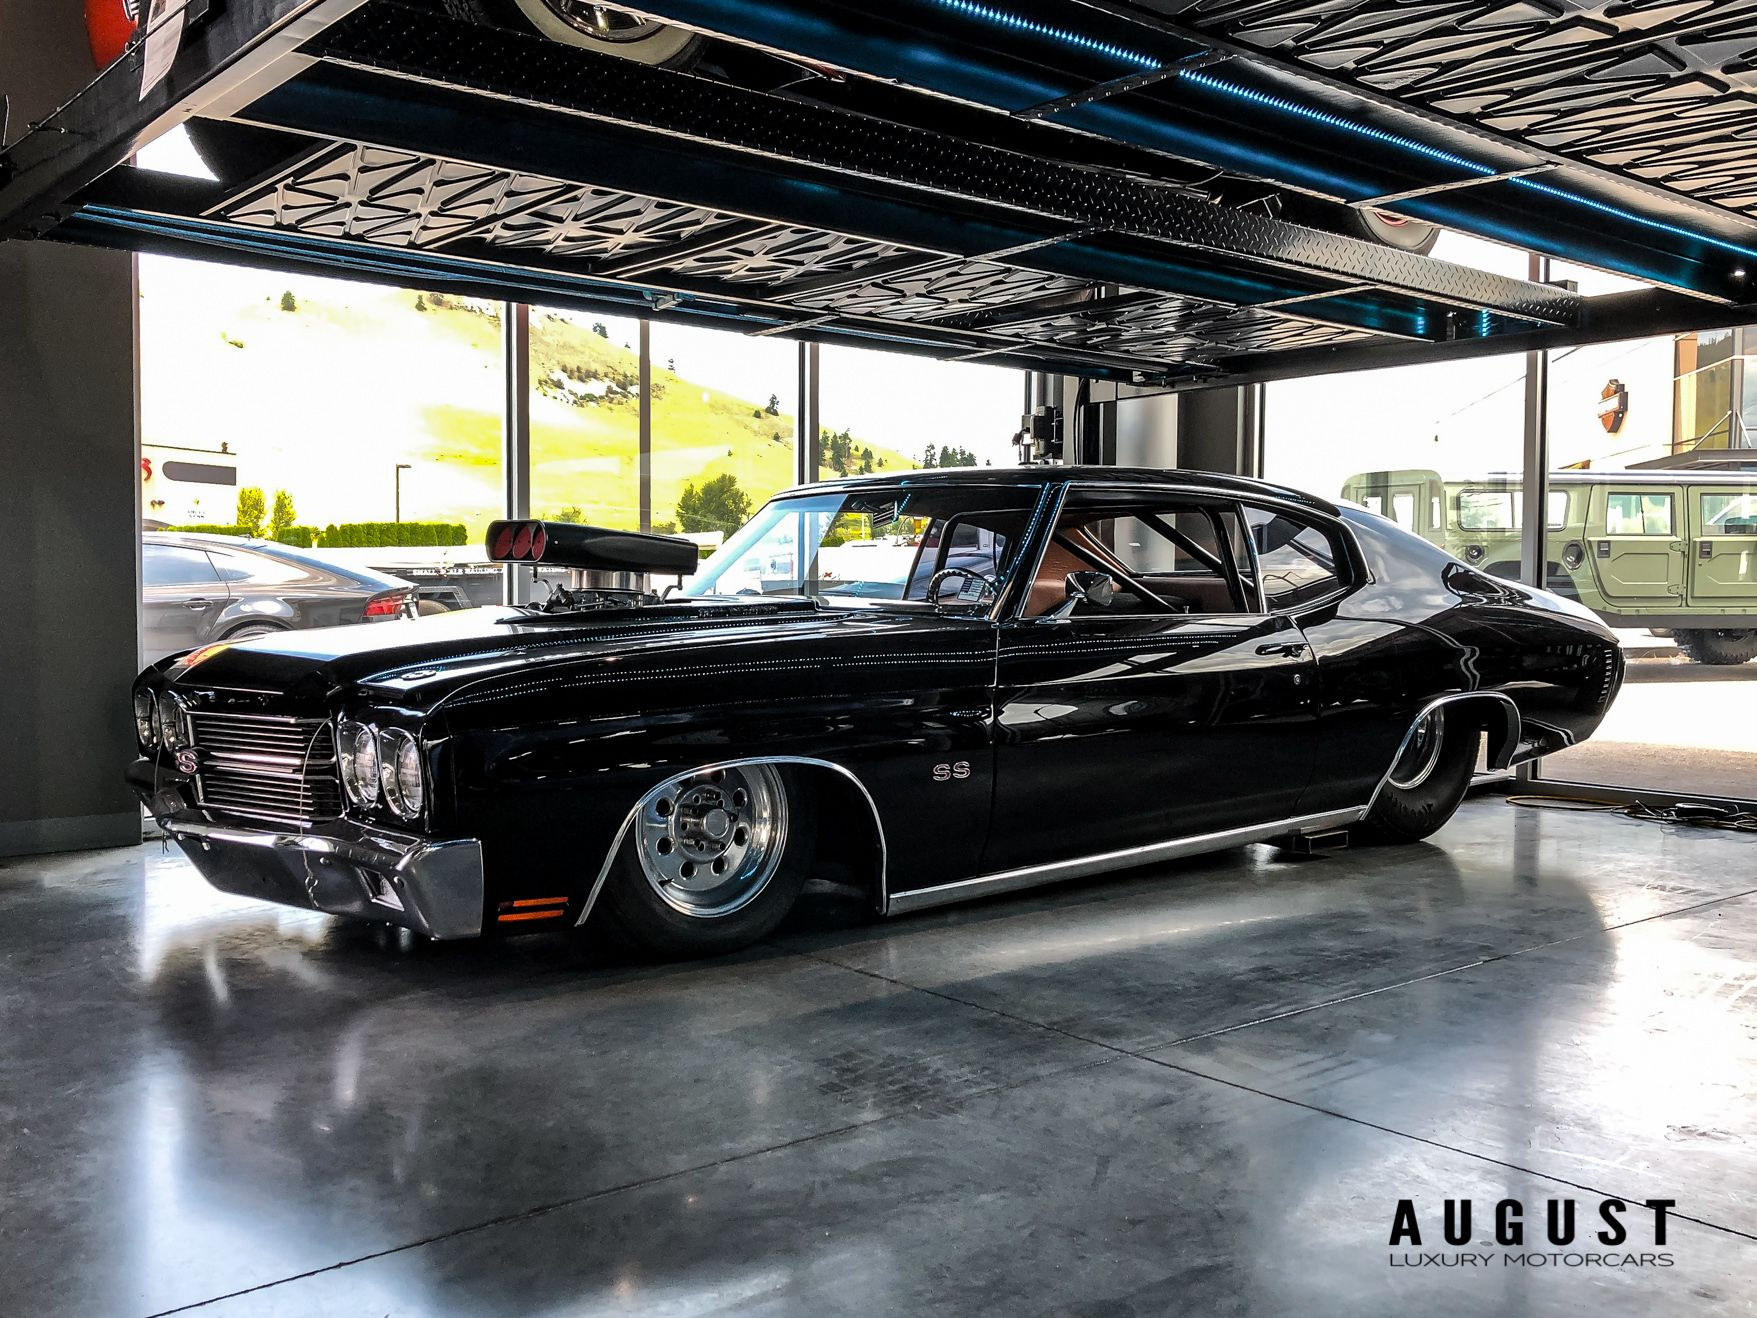 Pre-Owned 1972 Chevrolet Malibu With a 572 Big Block